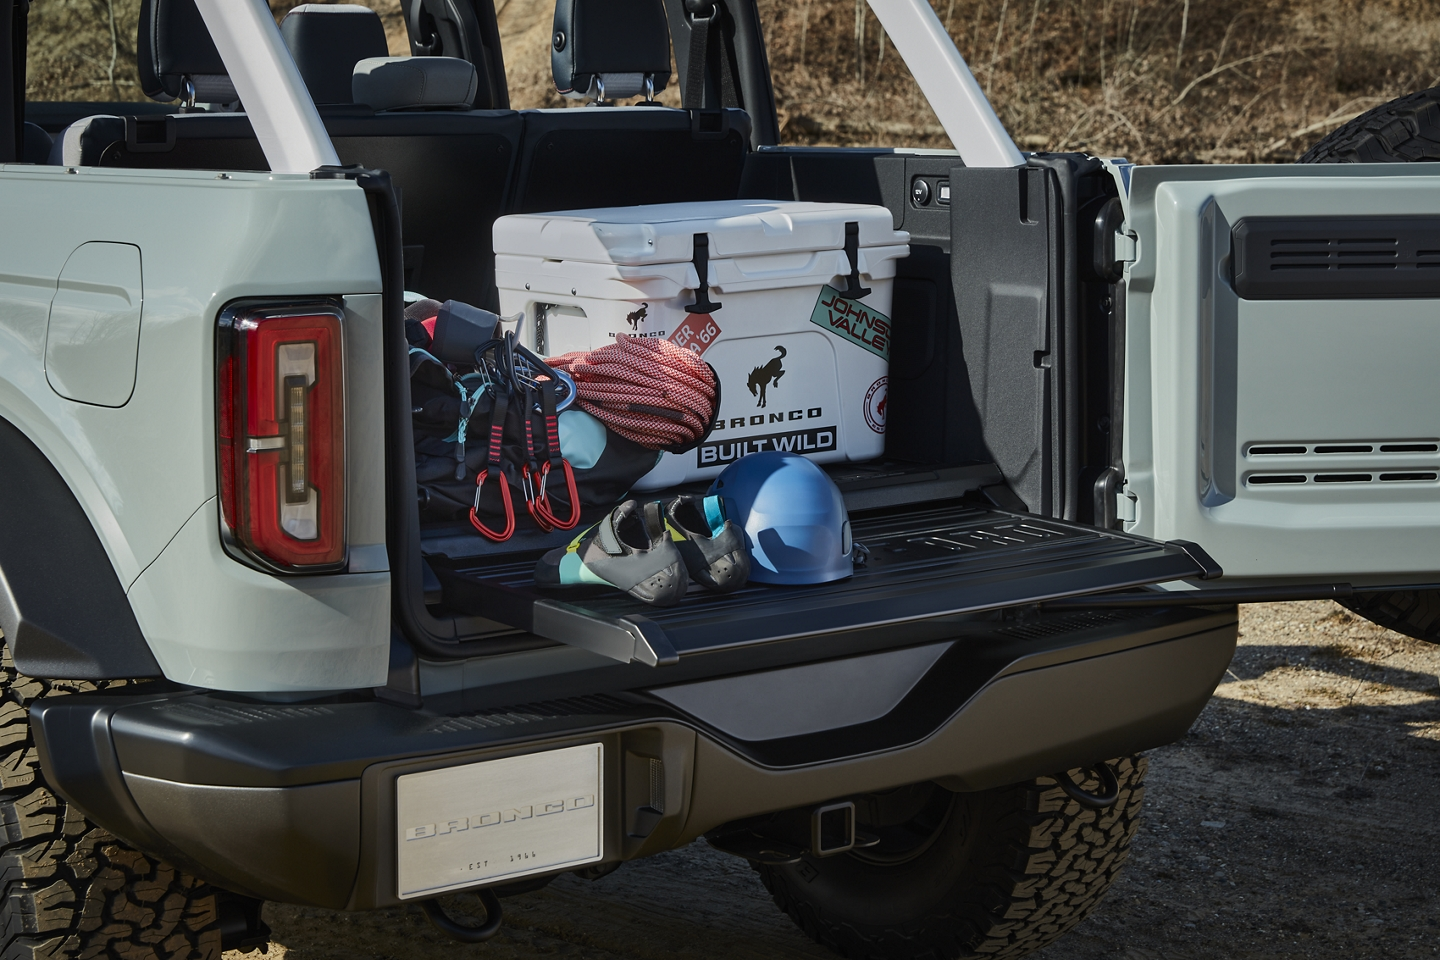 2021 Bronco Trunk space